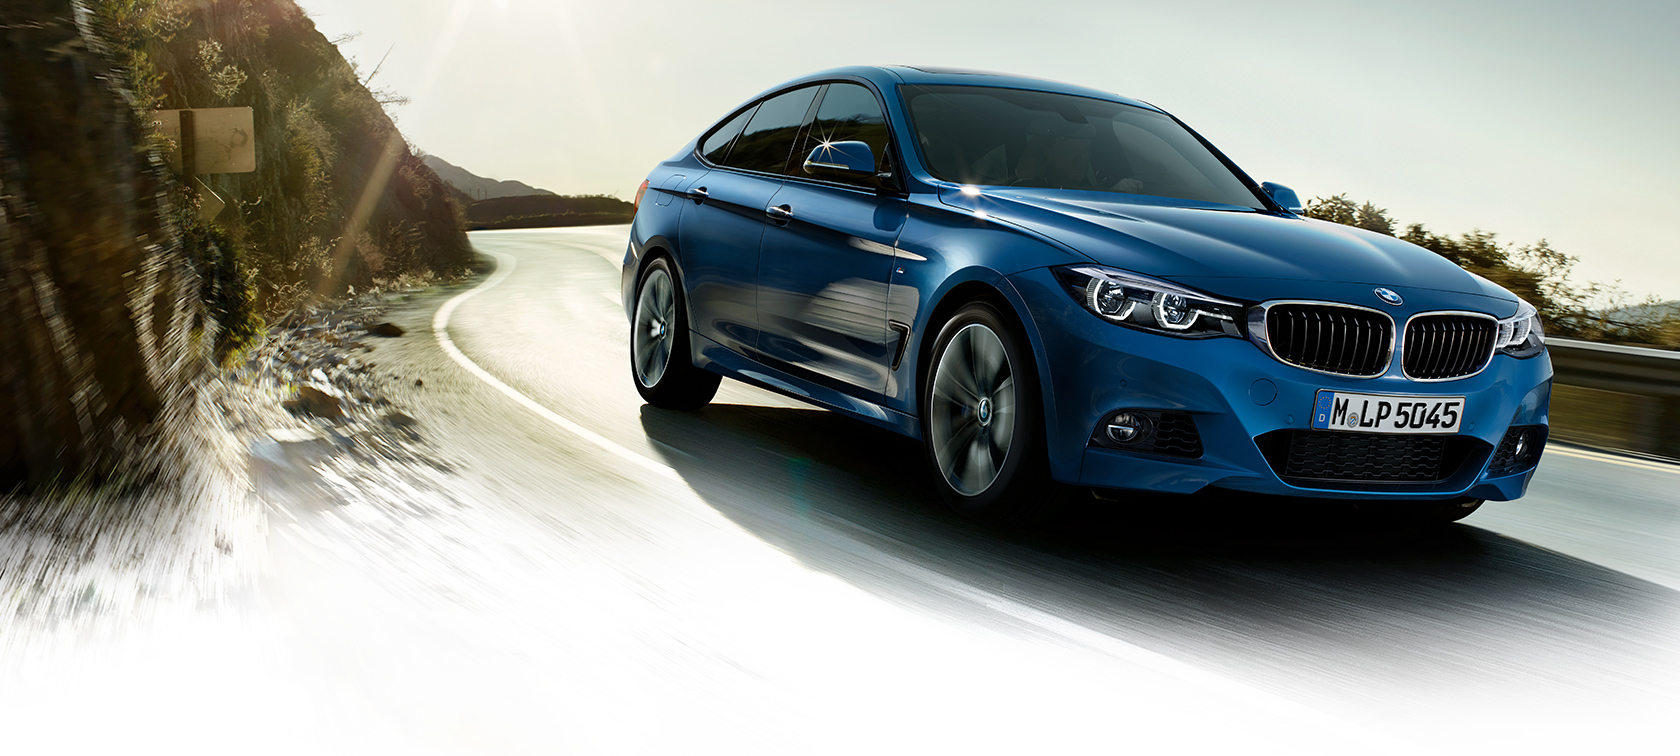 Driving dynamics & efficiency in the BMW 3 Series Gran Turismo